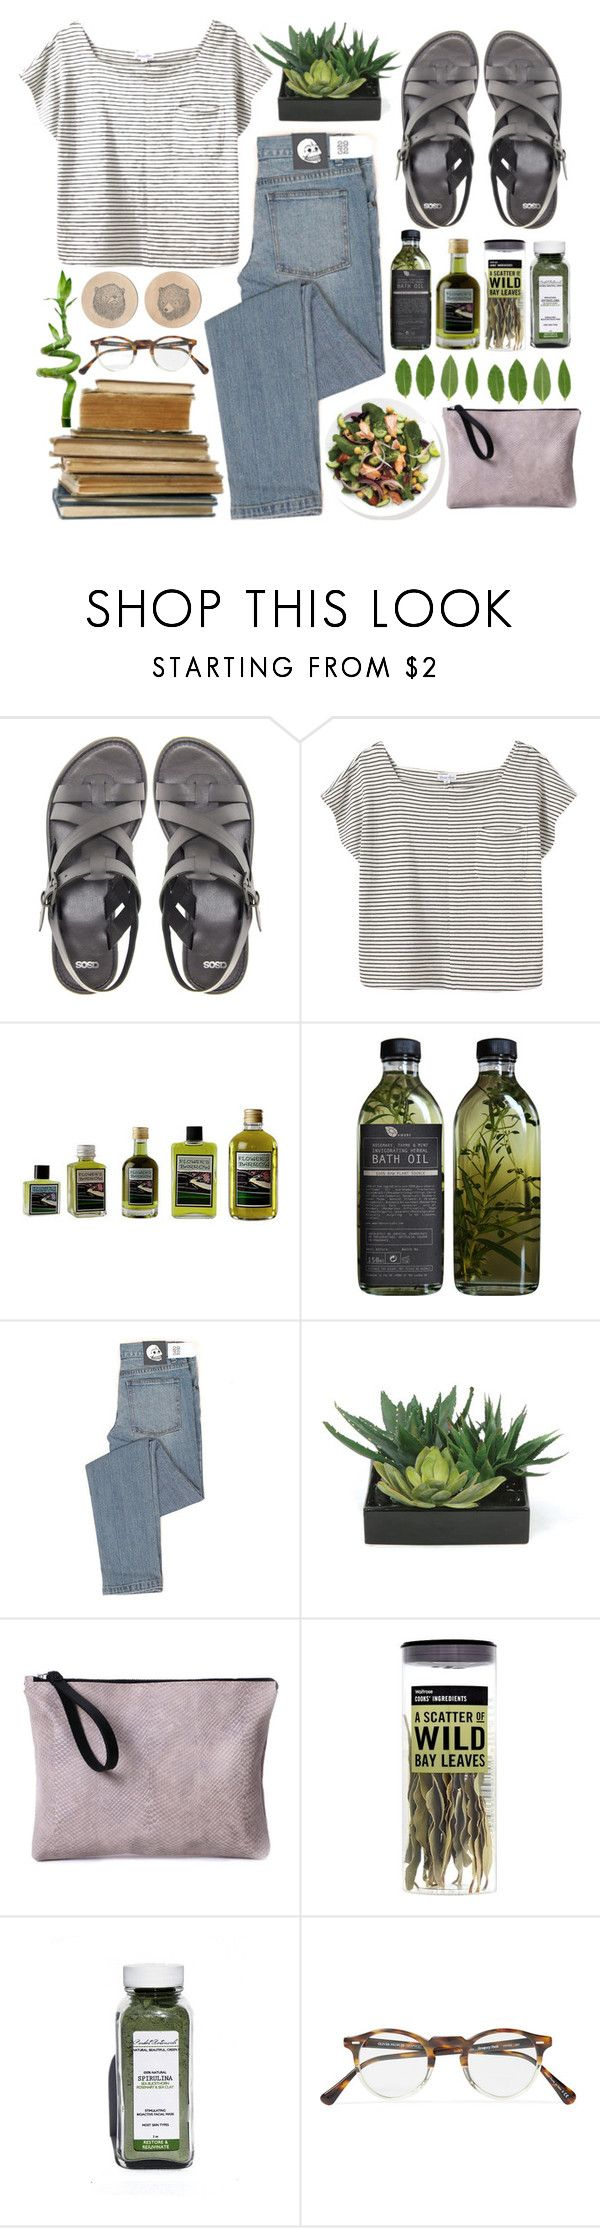 """""""maybe"""" by ahvela ❤ liked on Polyvore featuring ASOS, Steven Alan, PLANT, Cheap Monday, Lux-Art Silks, Asya Malbershtein and Oliver Peoples"""